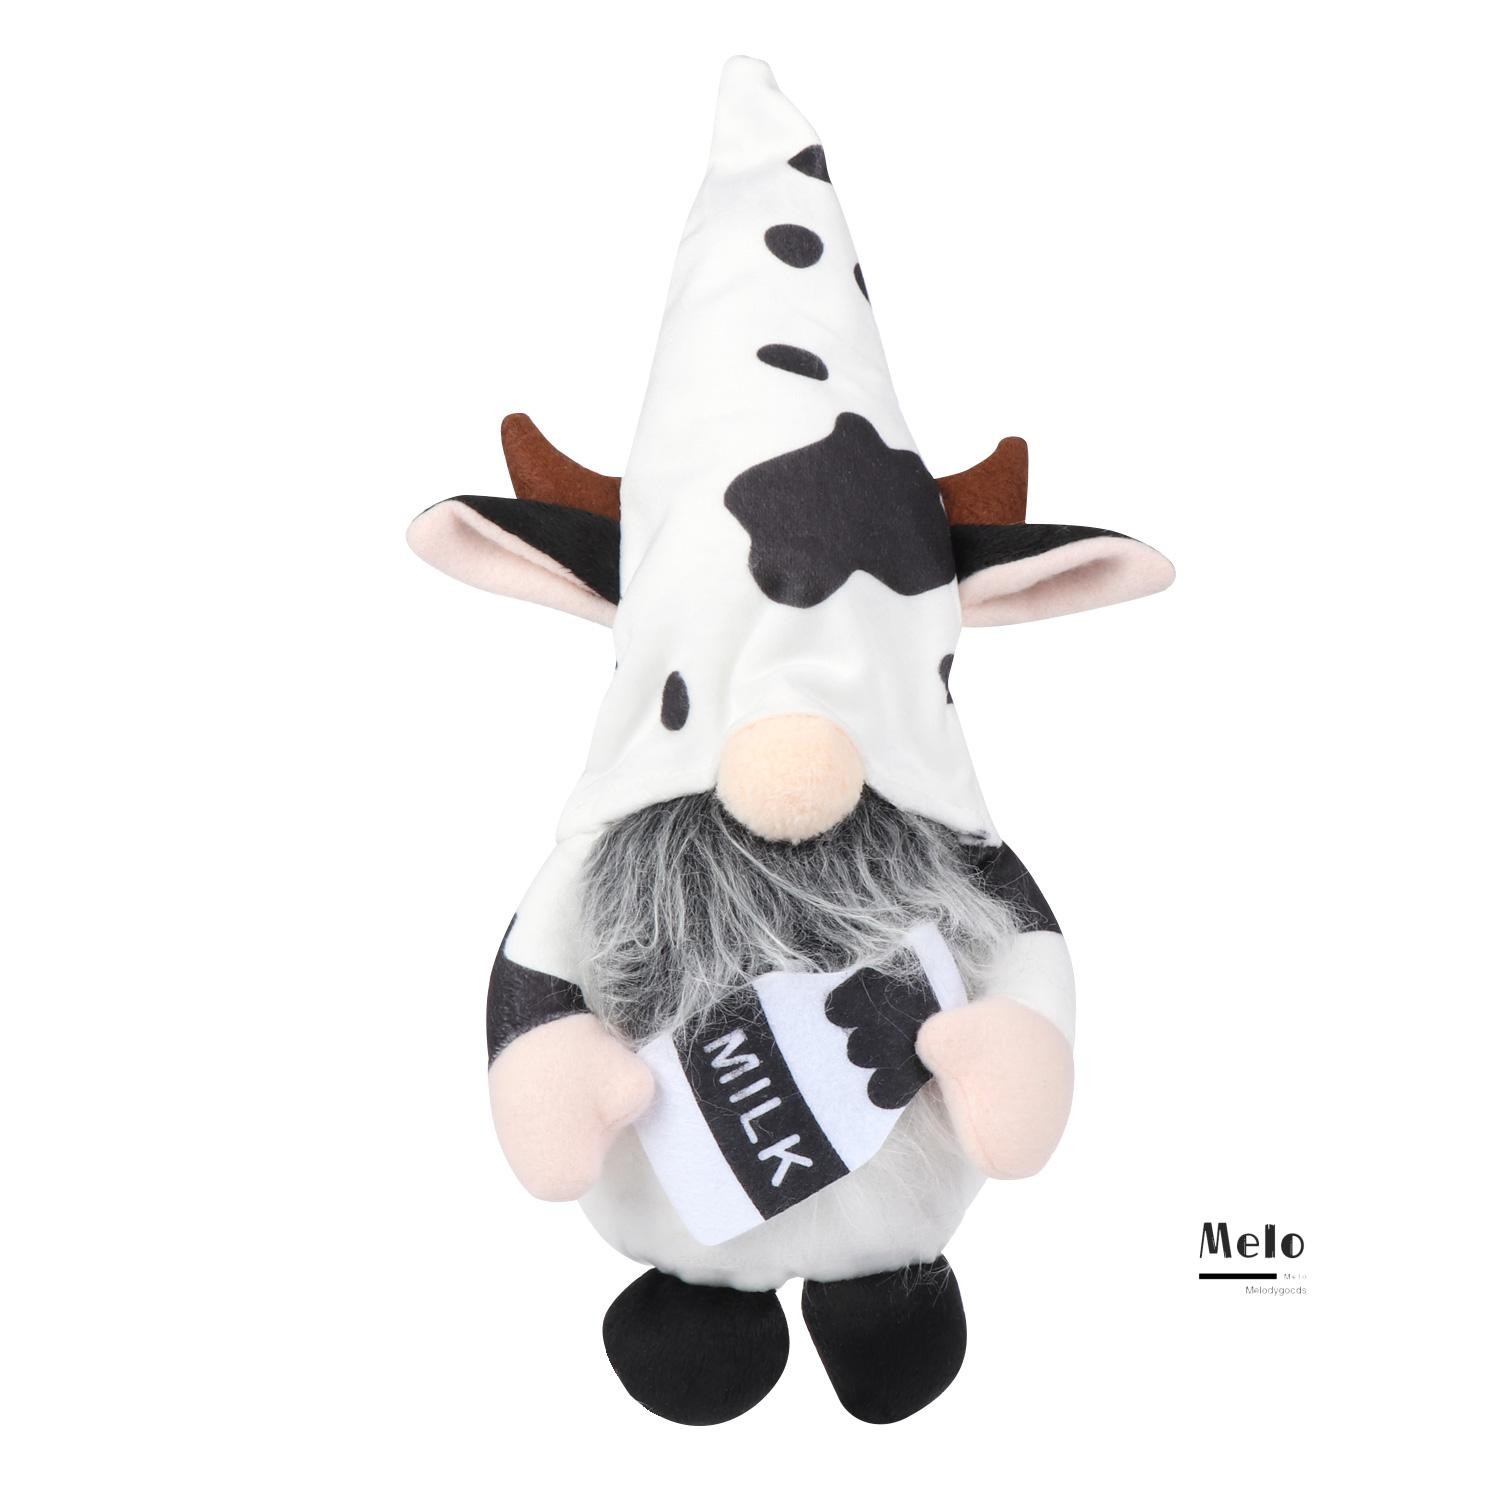 💍MELODG💍 Home&Living Gnomes Plush Outdoor Ornaments Gnomes Faceless Doll Cow Elf Cartoon Cow Garden Supplies Home Decoration Tray Display Farmhouse Decor Scandinavian Swedish